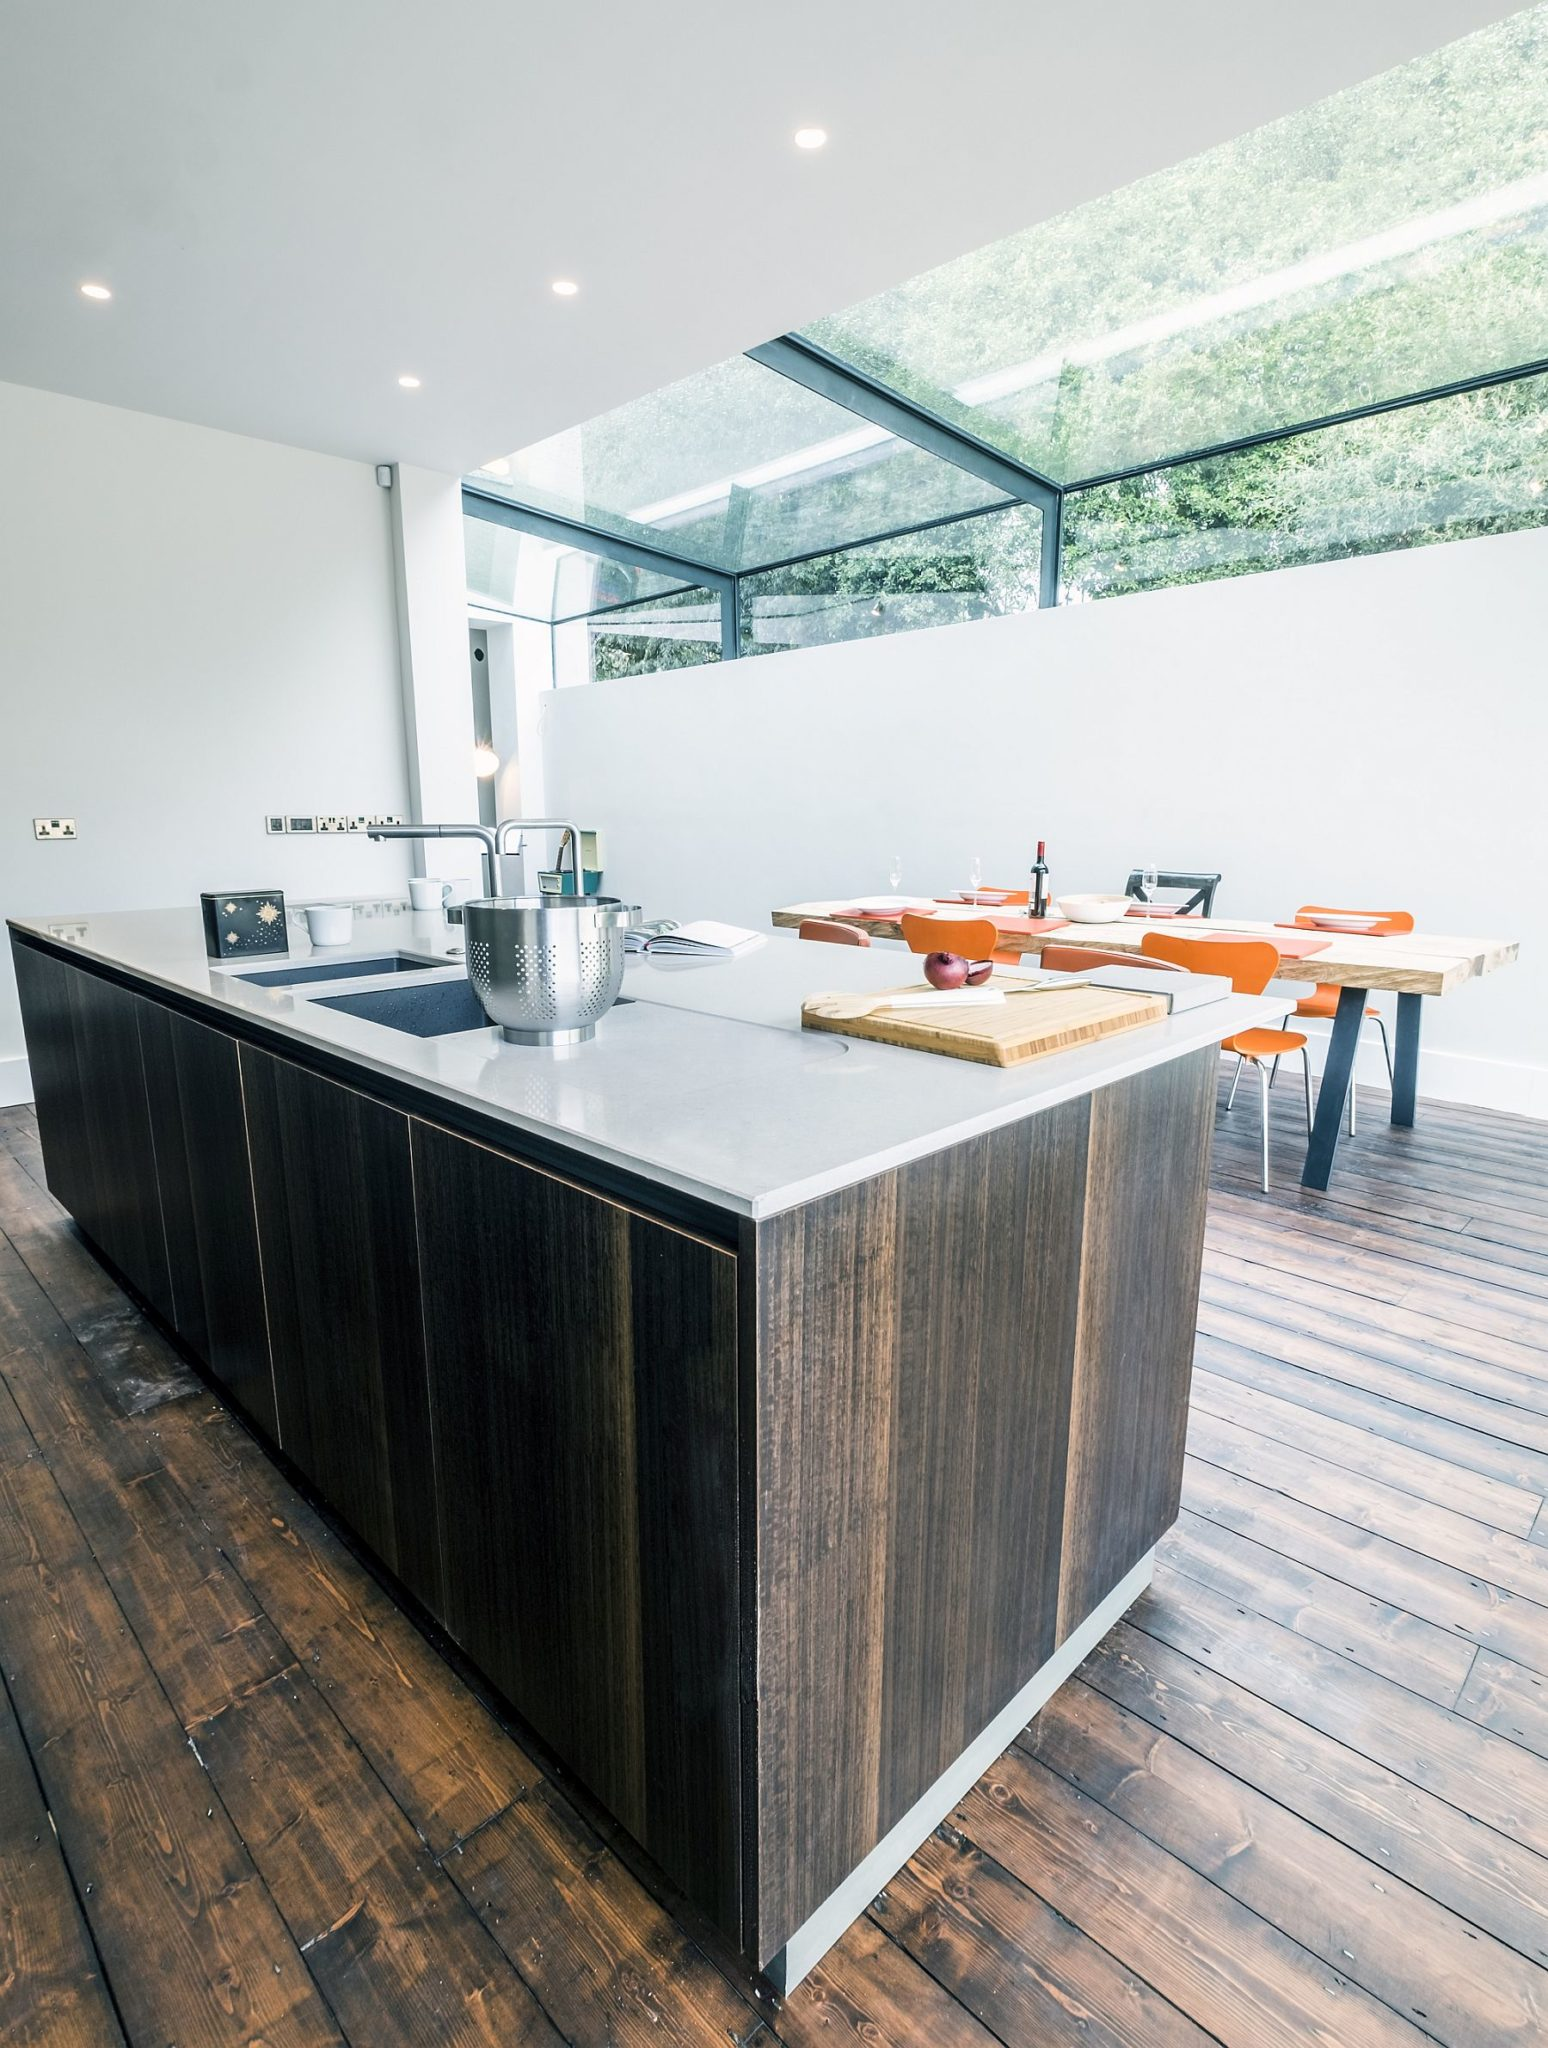 Modern kitchen island in wood and gray